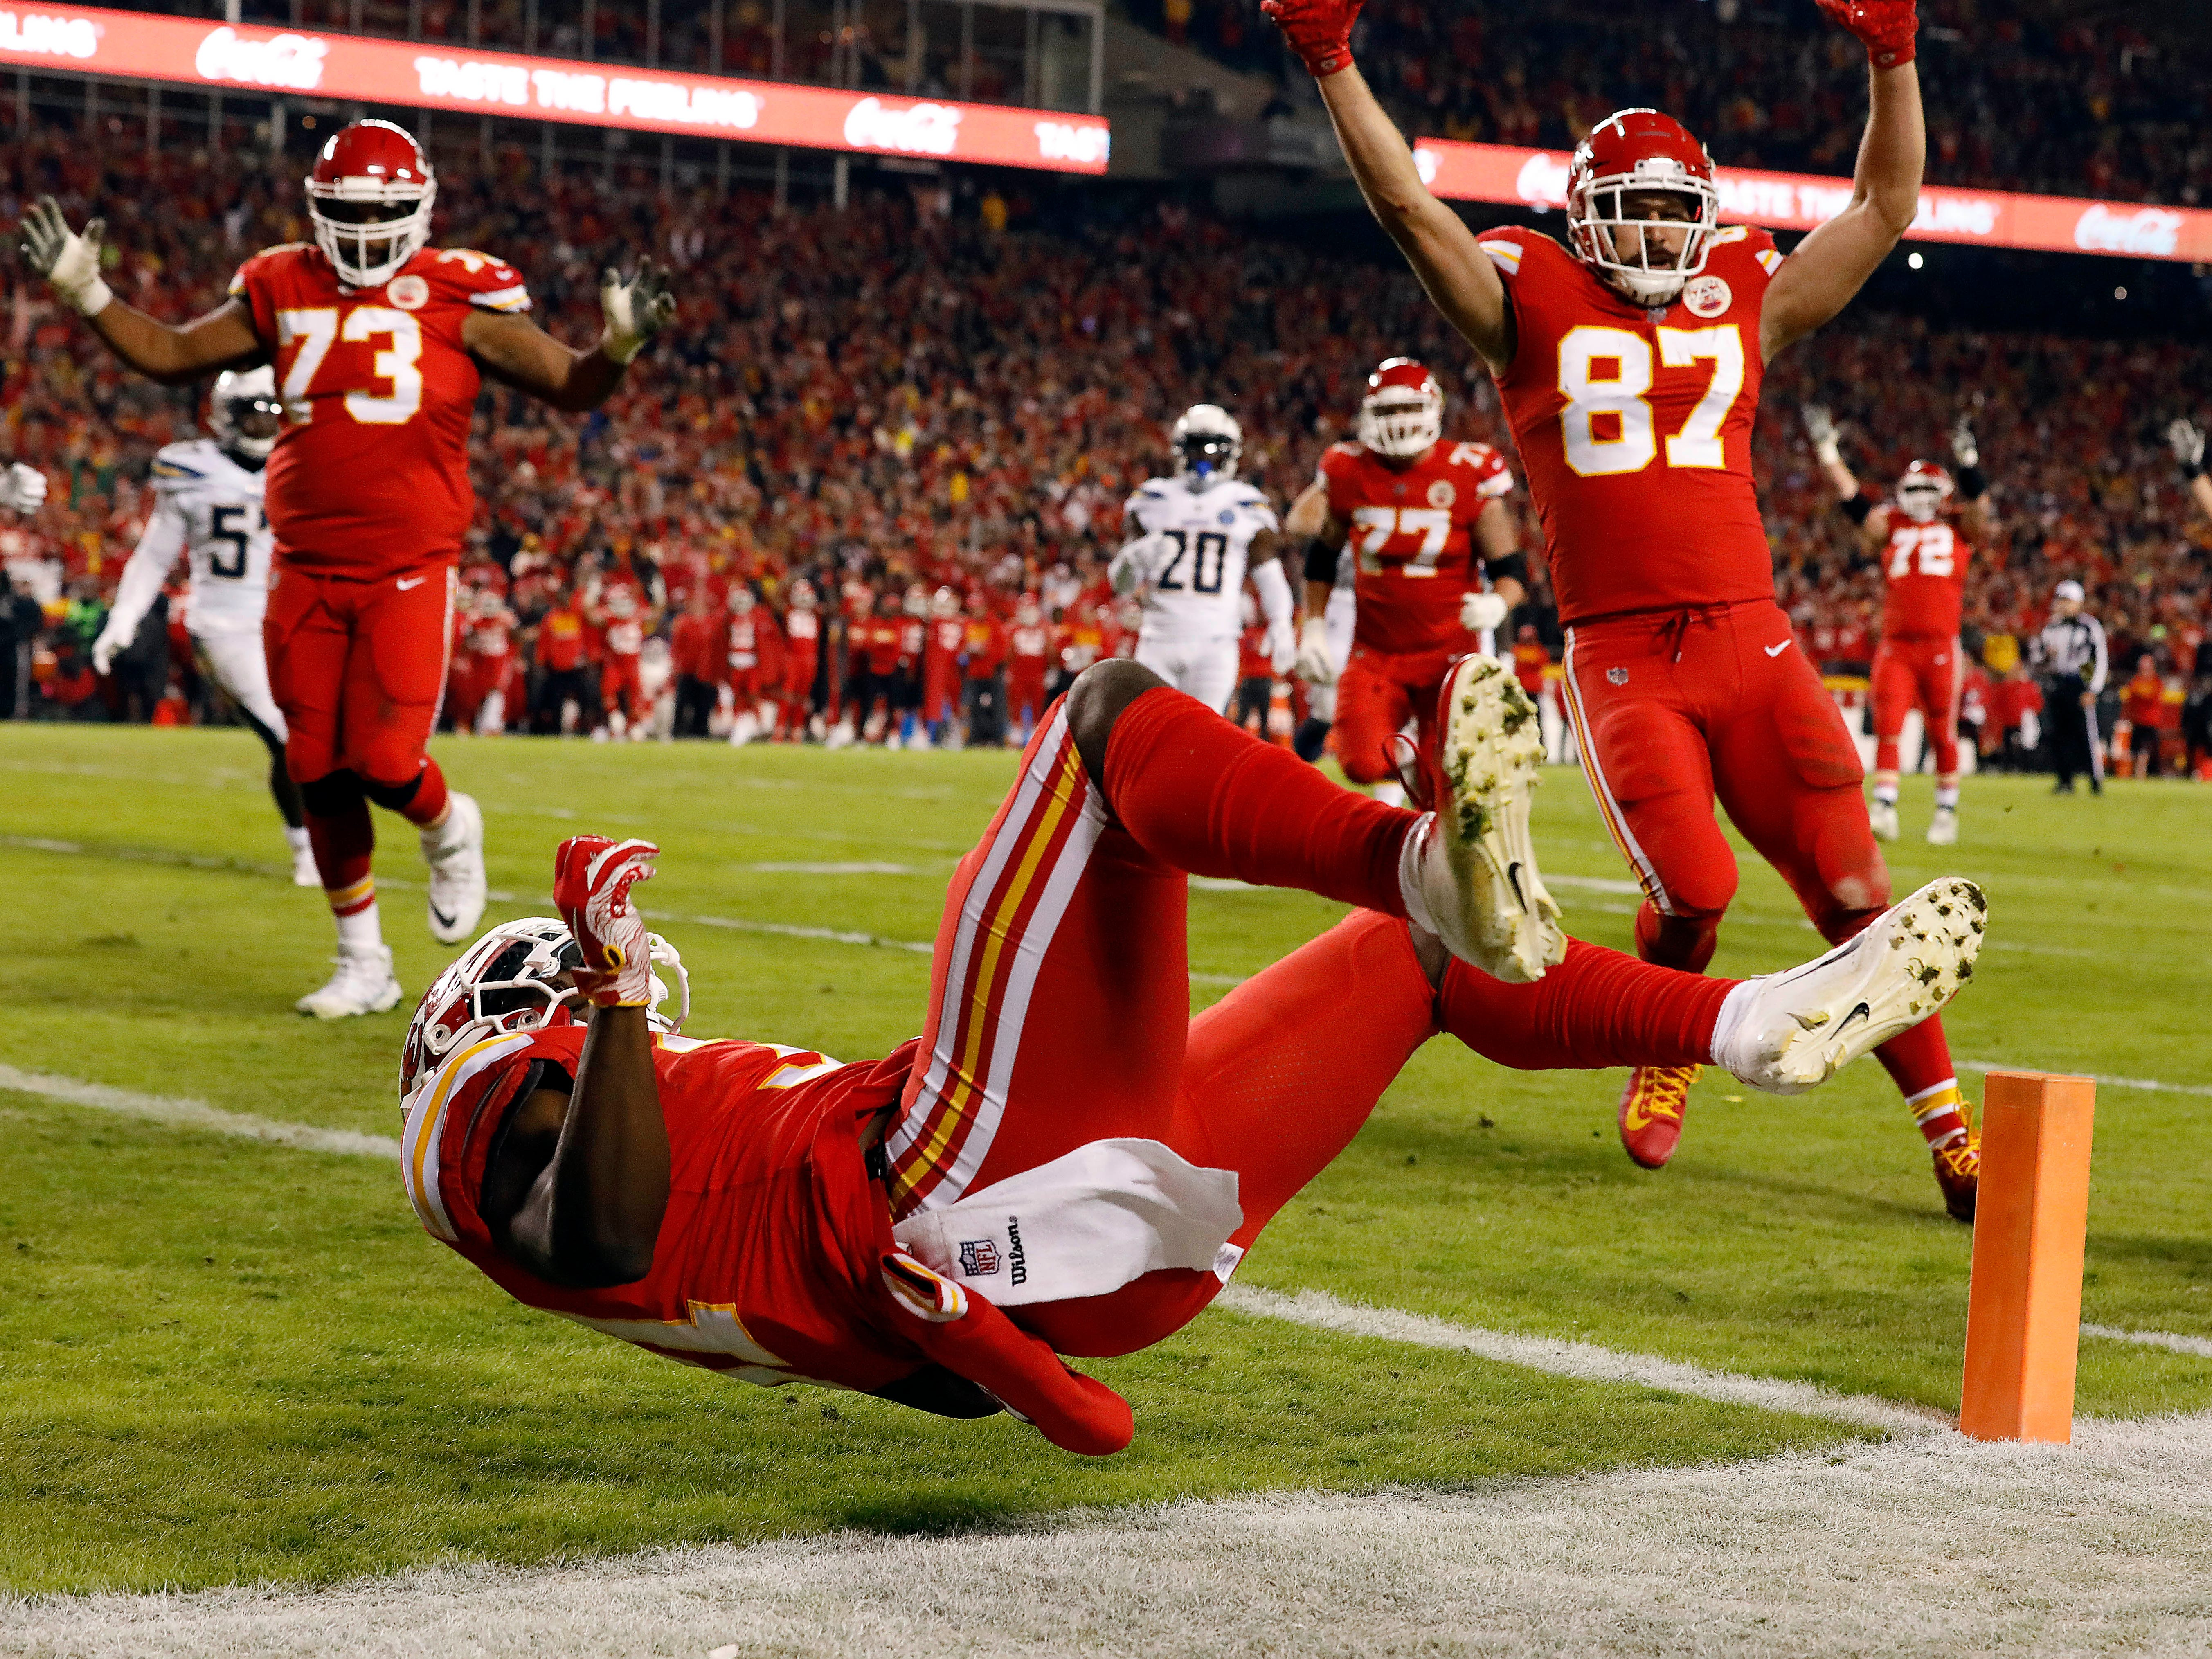 Darrel Williams dives into the end zone for a touchdown against the Los Angeles Chargers at Arrowhead Stadium.